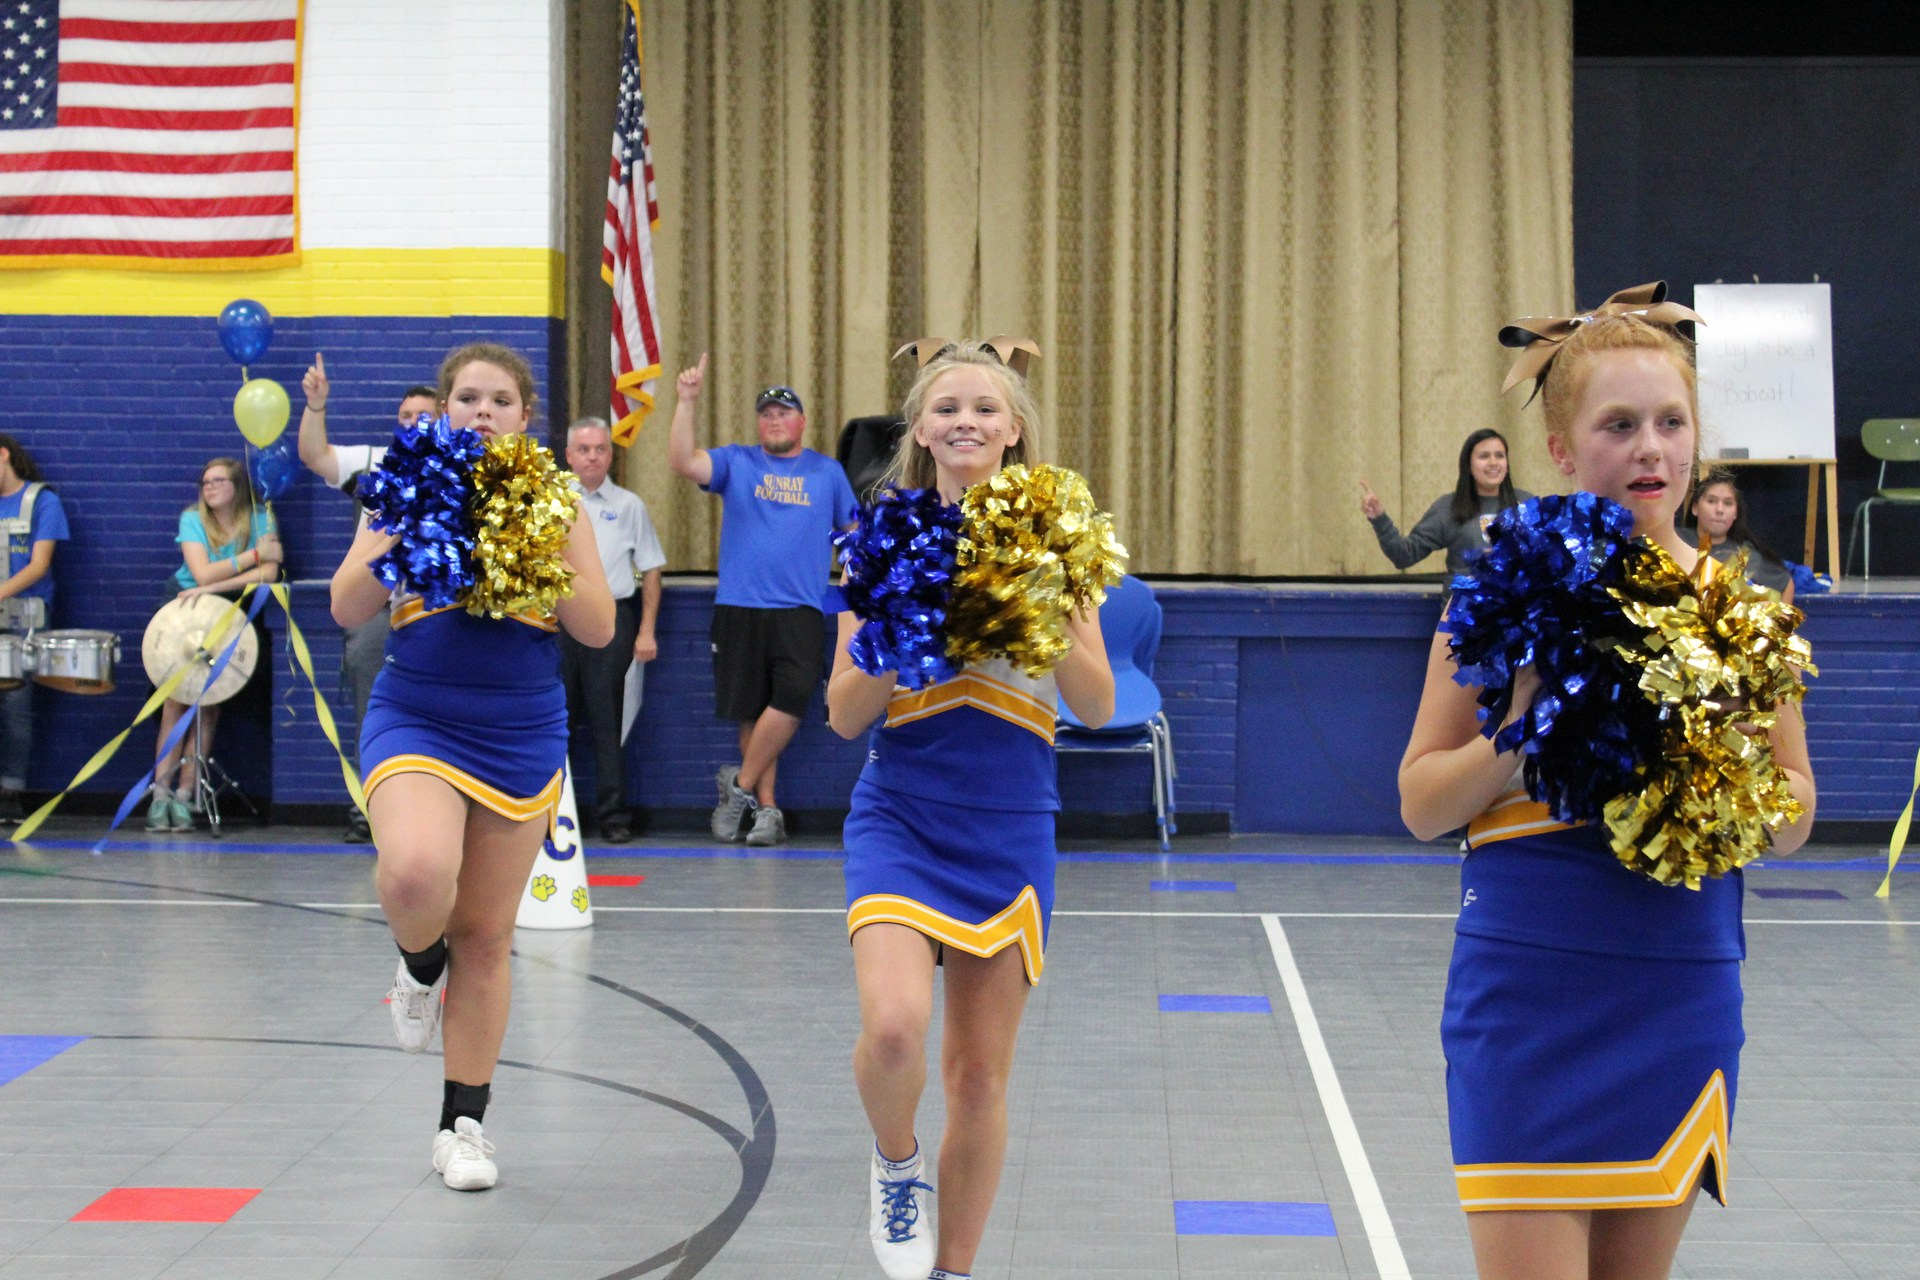 Jr. High Cheerleaders doing the school song